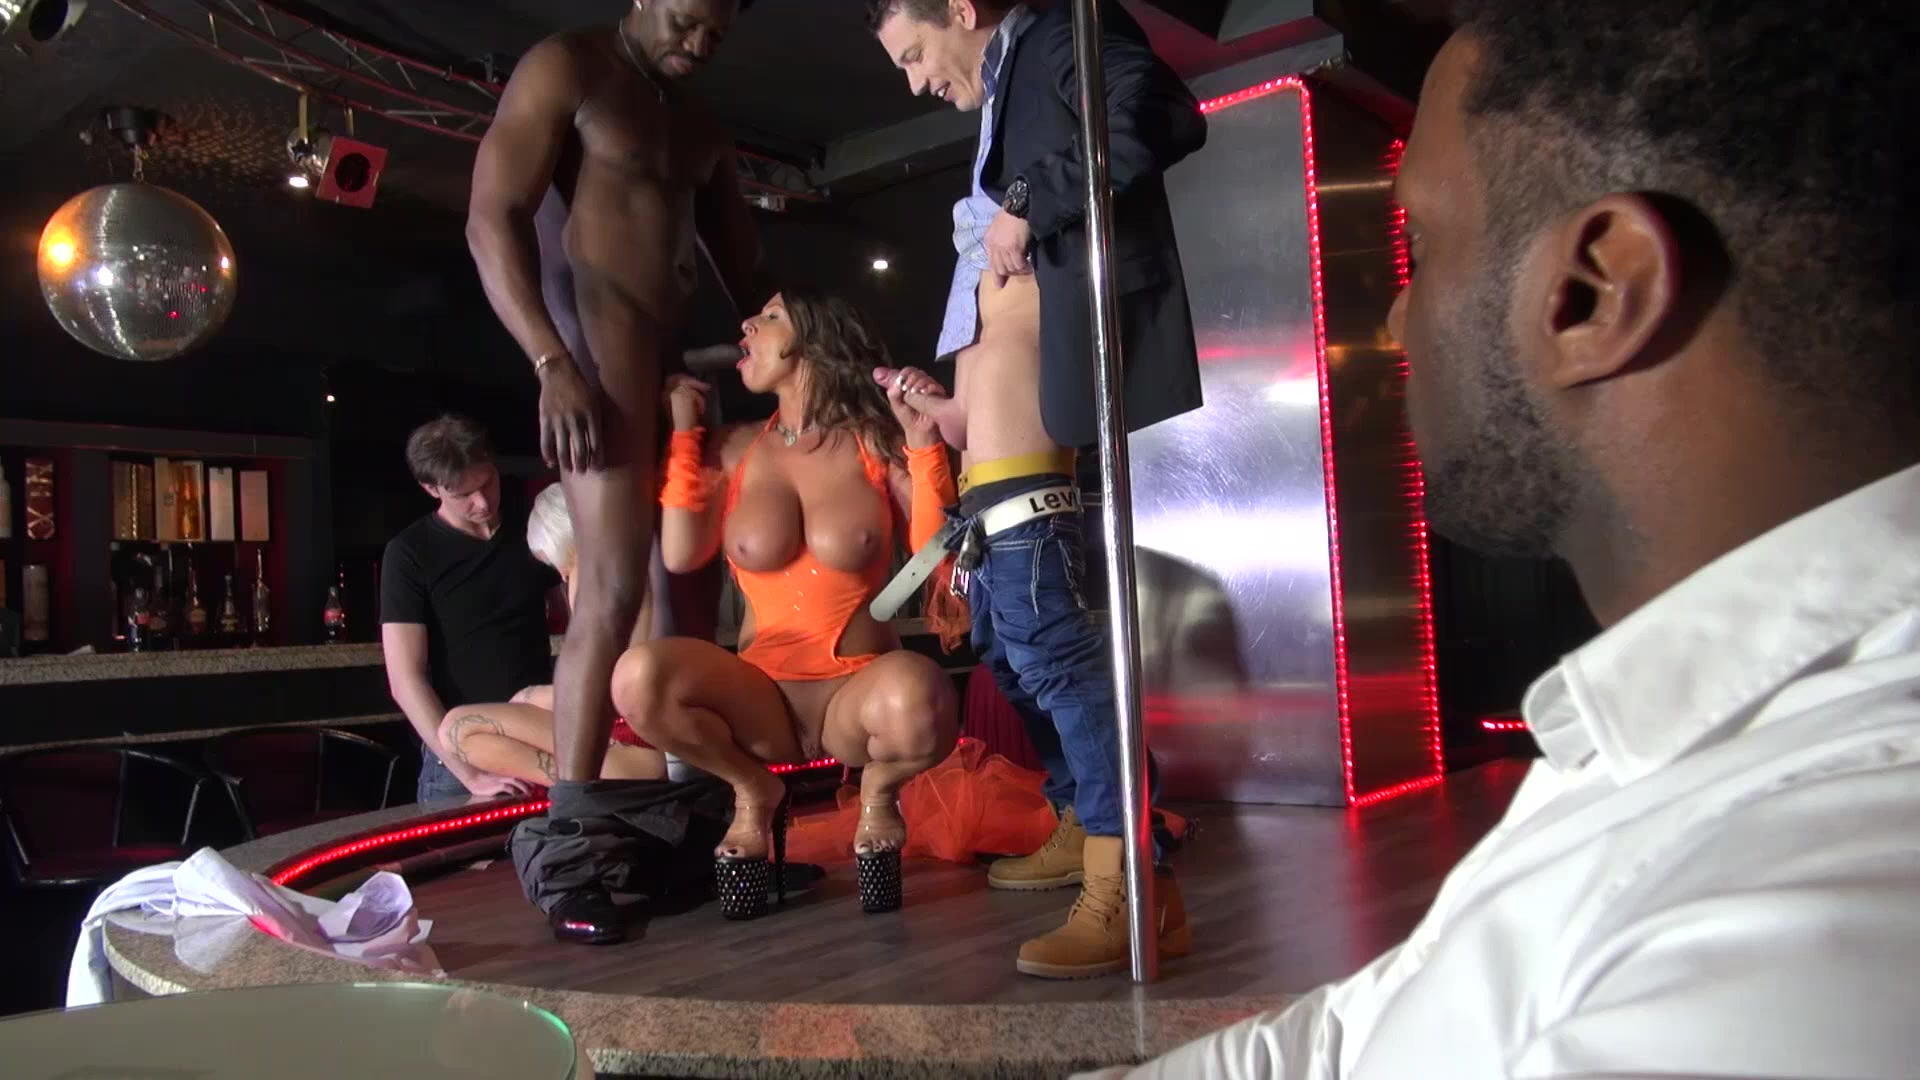 Strip club Gangbang